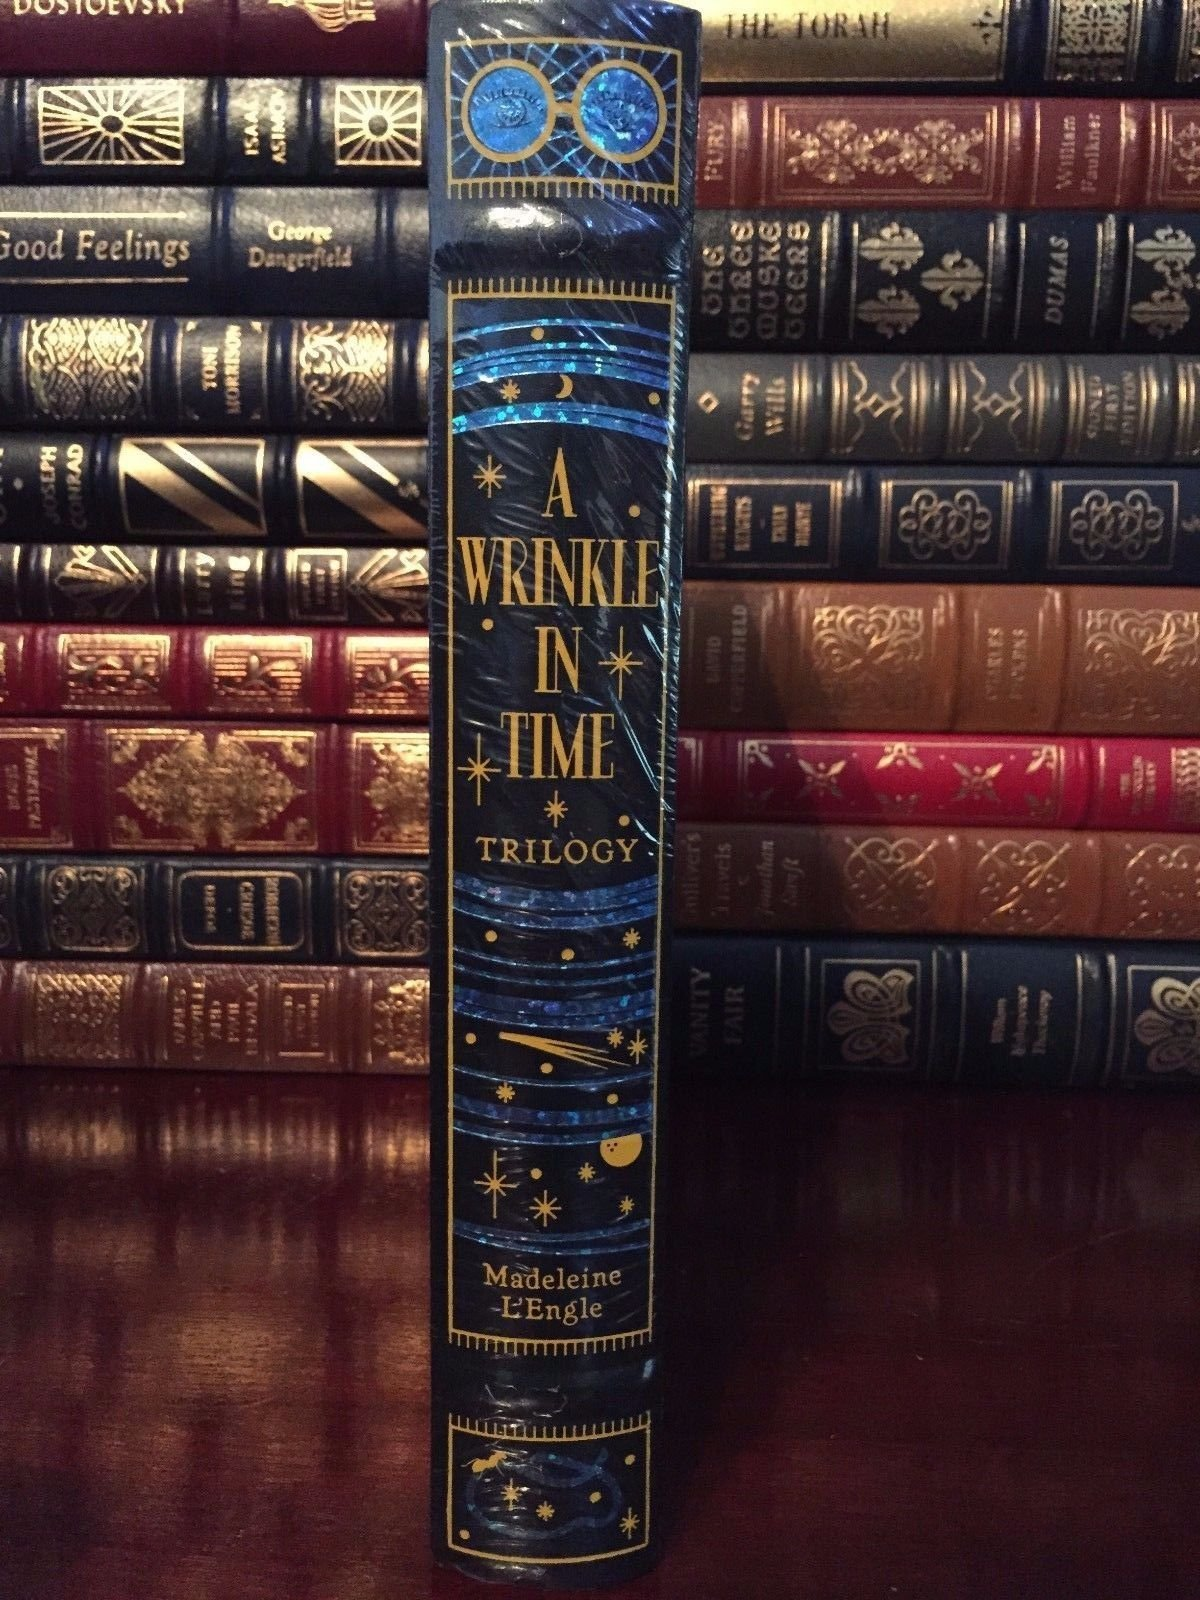 A Wrinkle In Time Trilogy By Madeline L'engle Leather Bound Collectible:  Amazon: Books